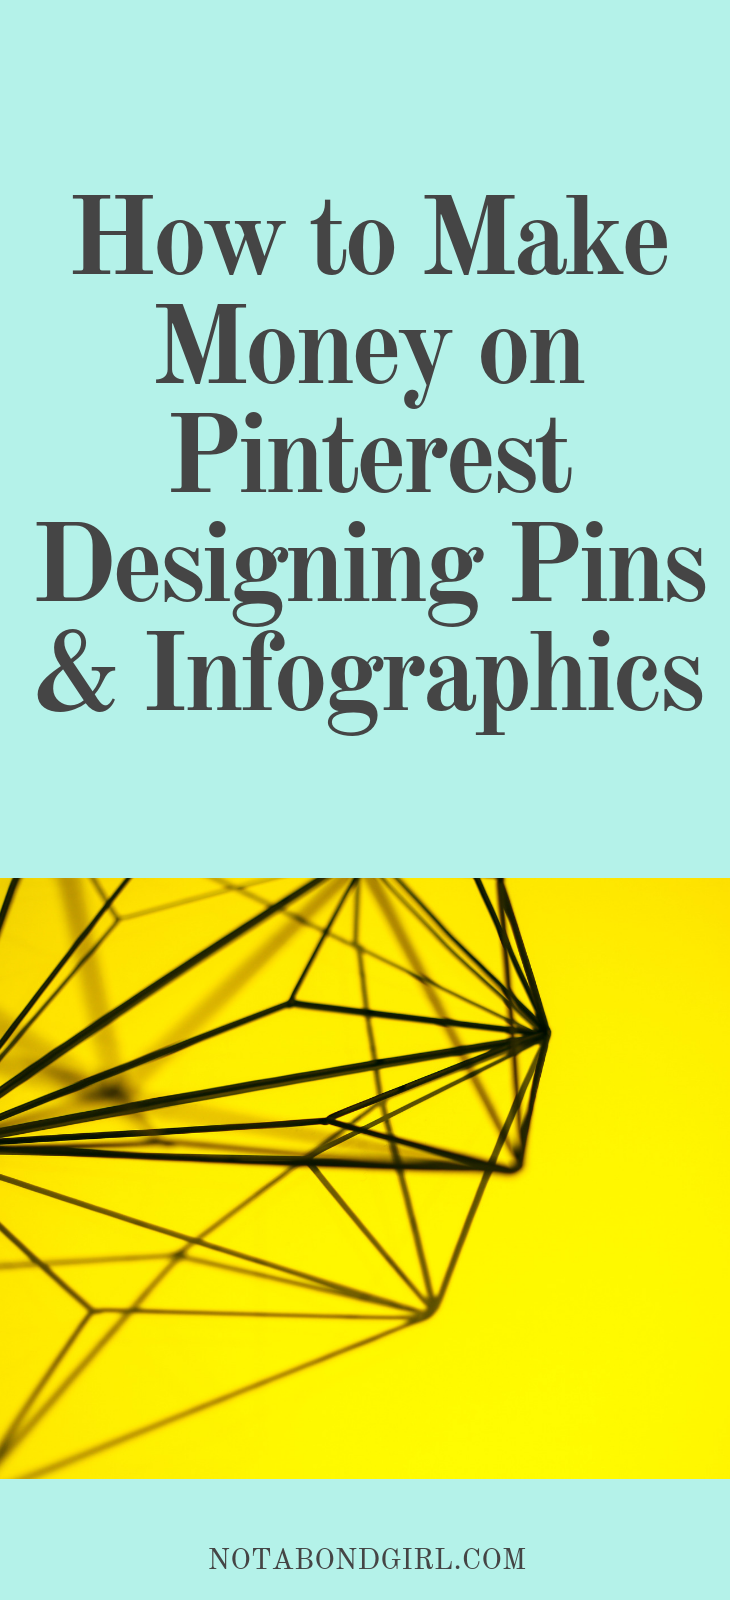 Graphic Design Opportunity: Show Off Your Pin Designs